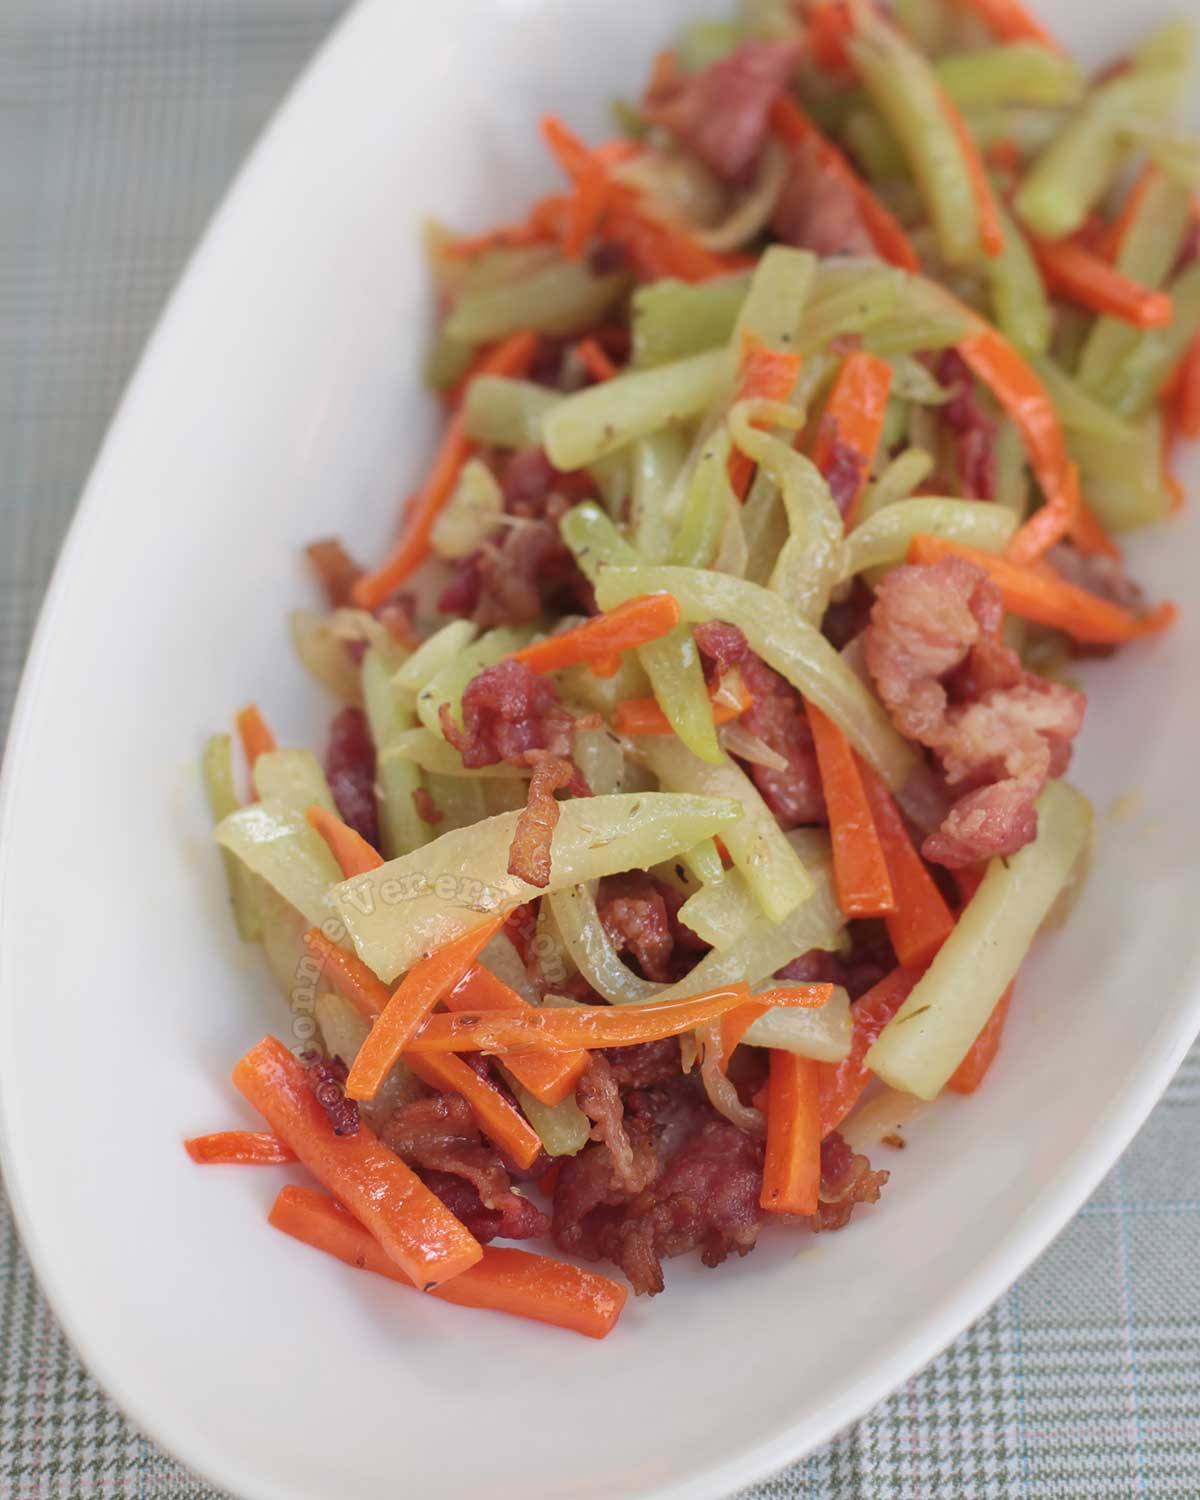 Sautéed chayote and carrot with bacon (cooked in bacon fat!)